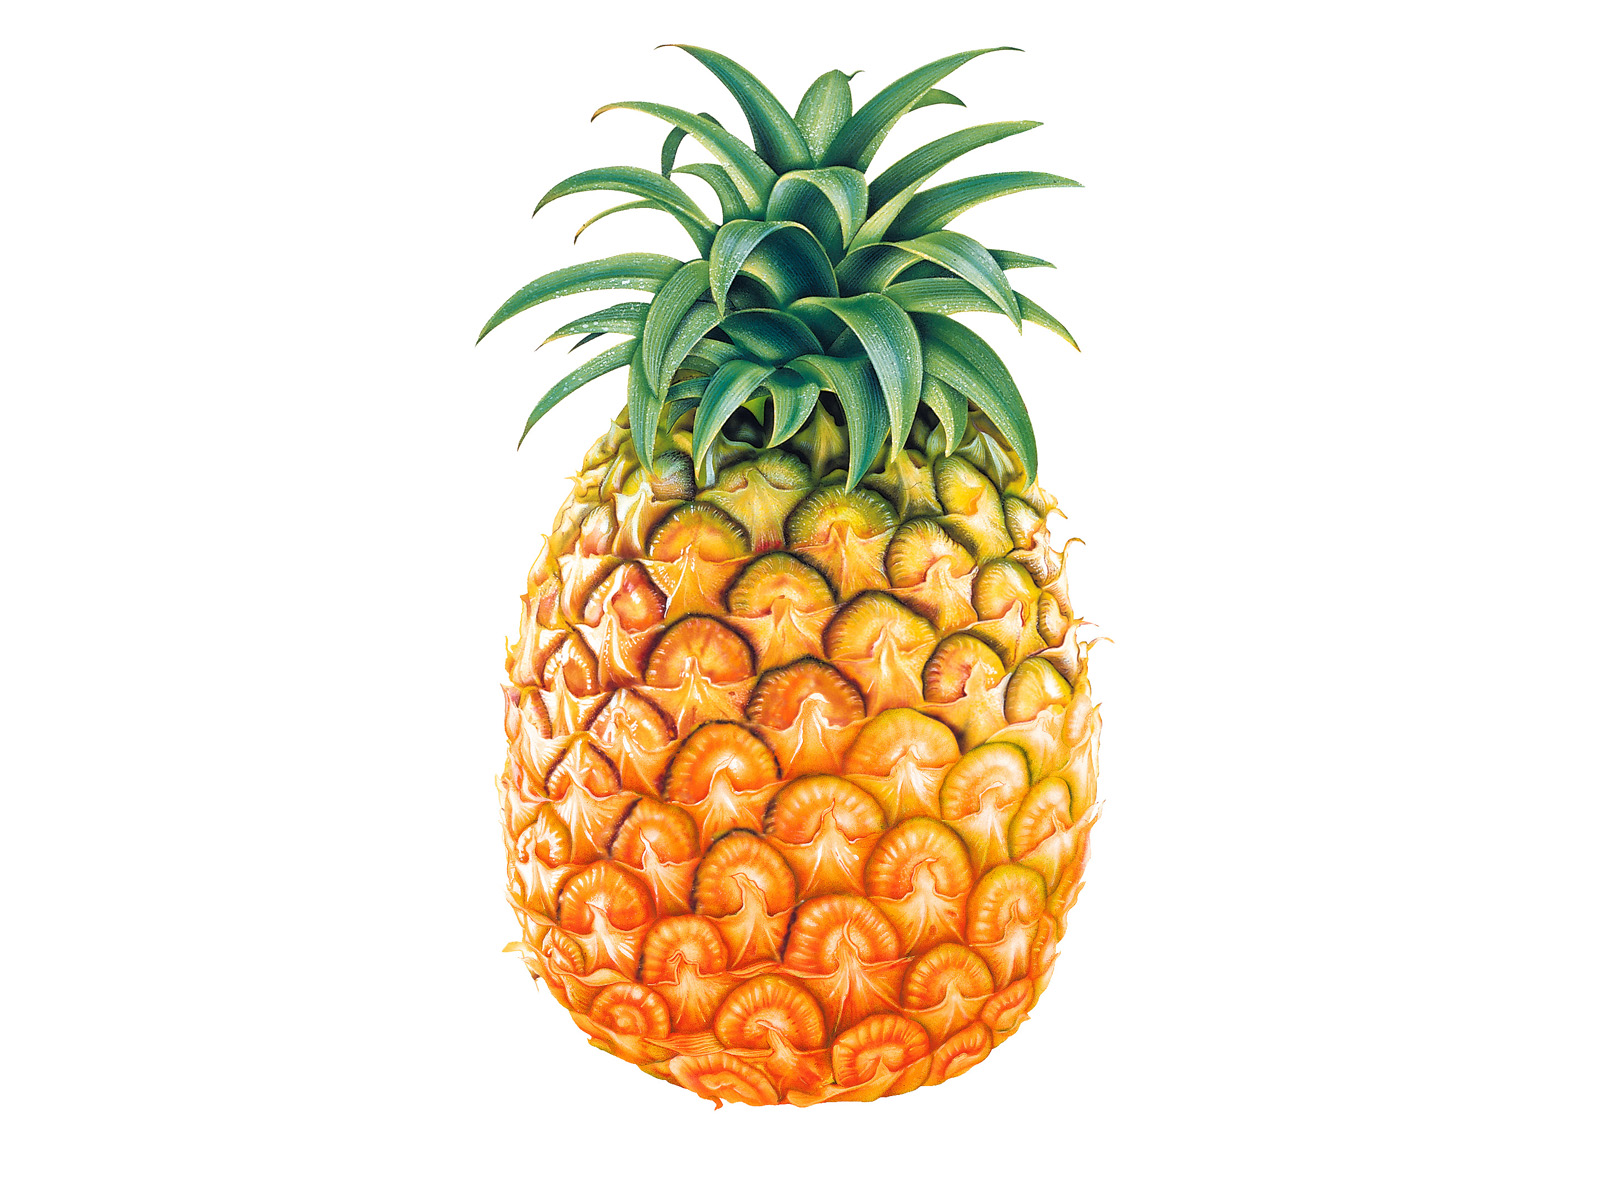 Pineapple Tropical Plant 151.66 Kb